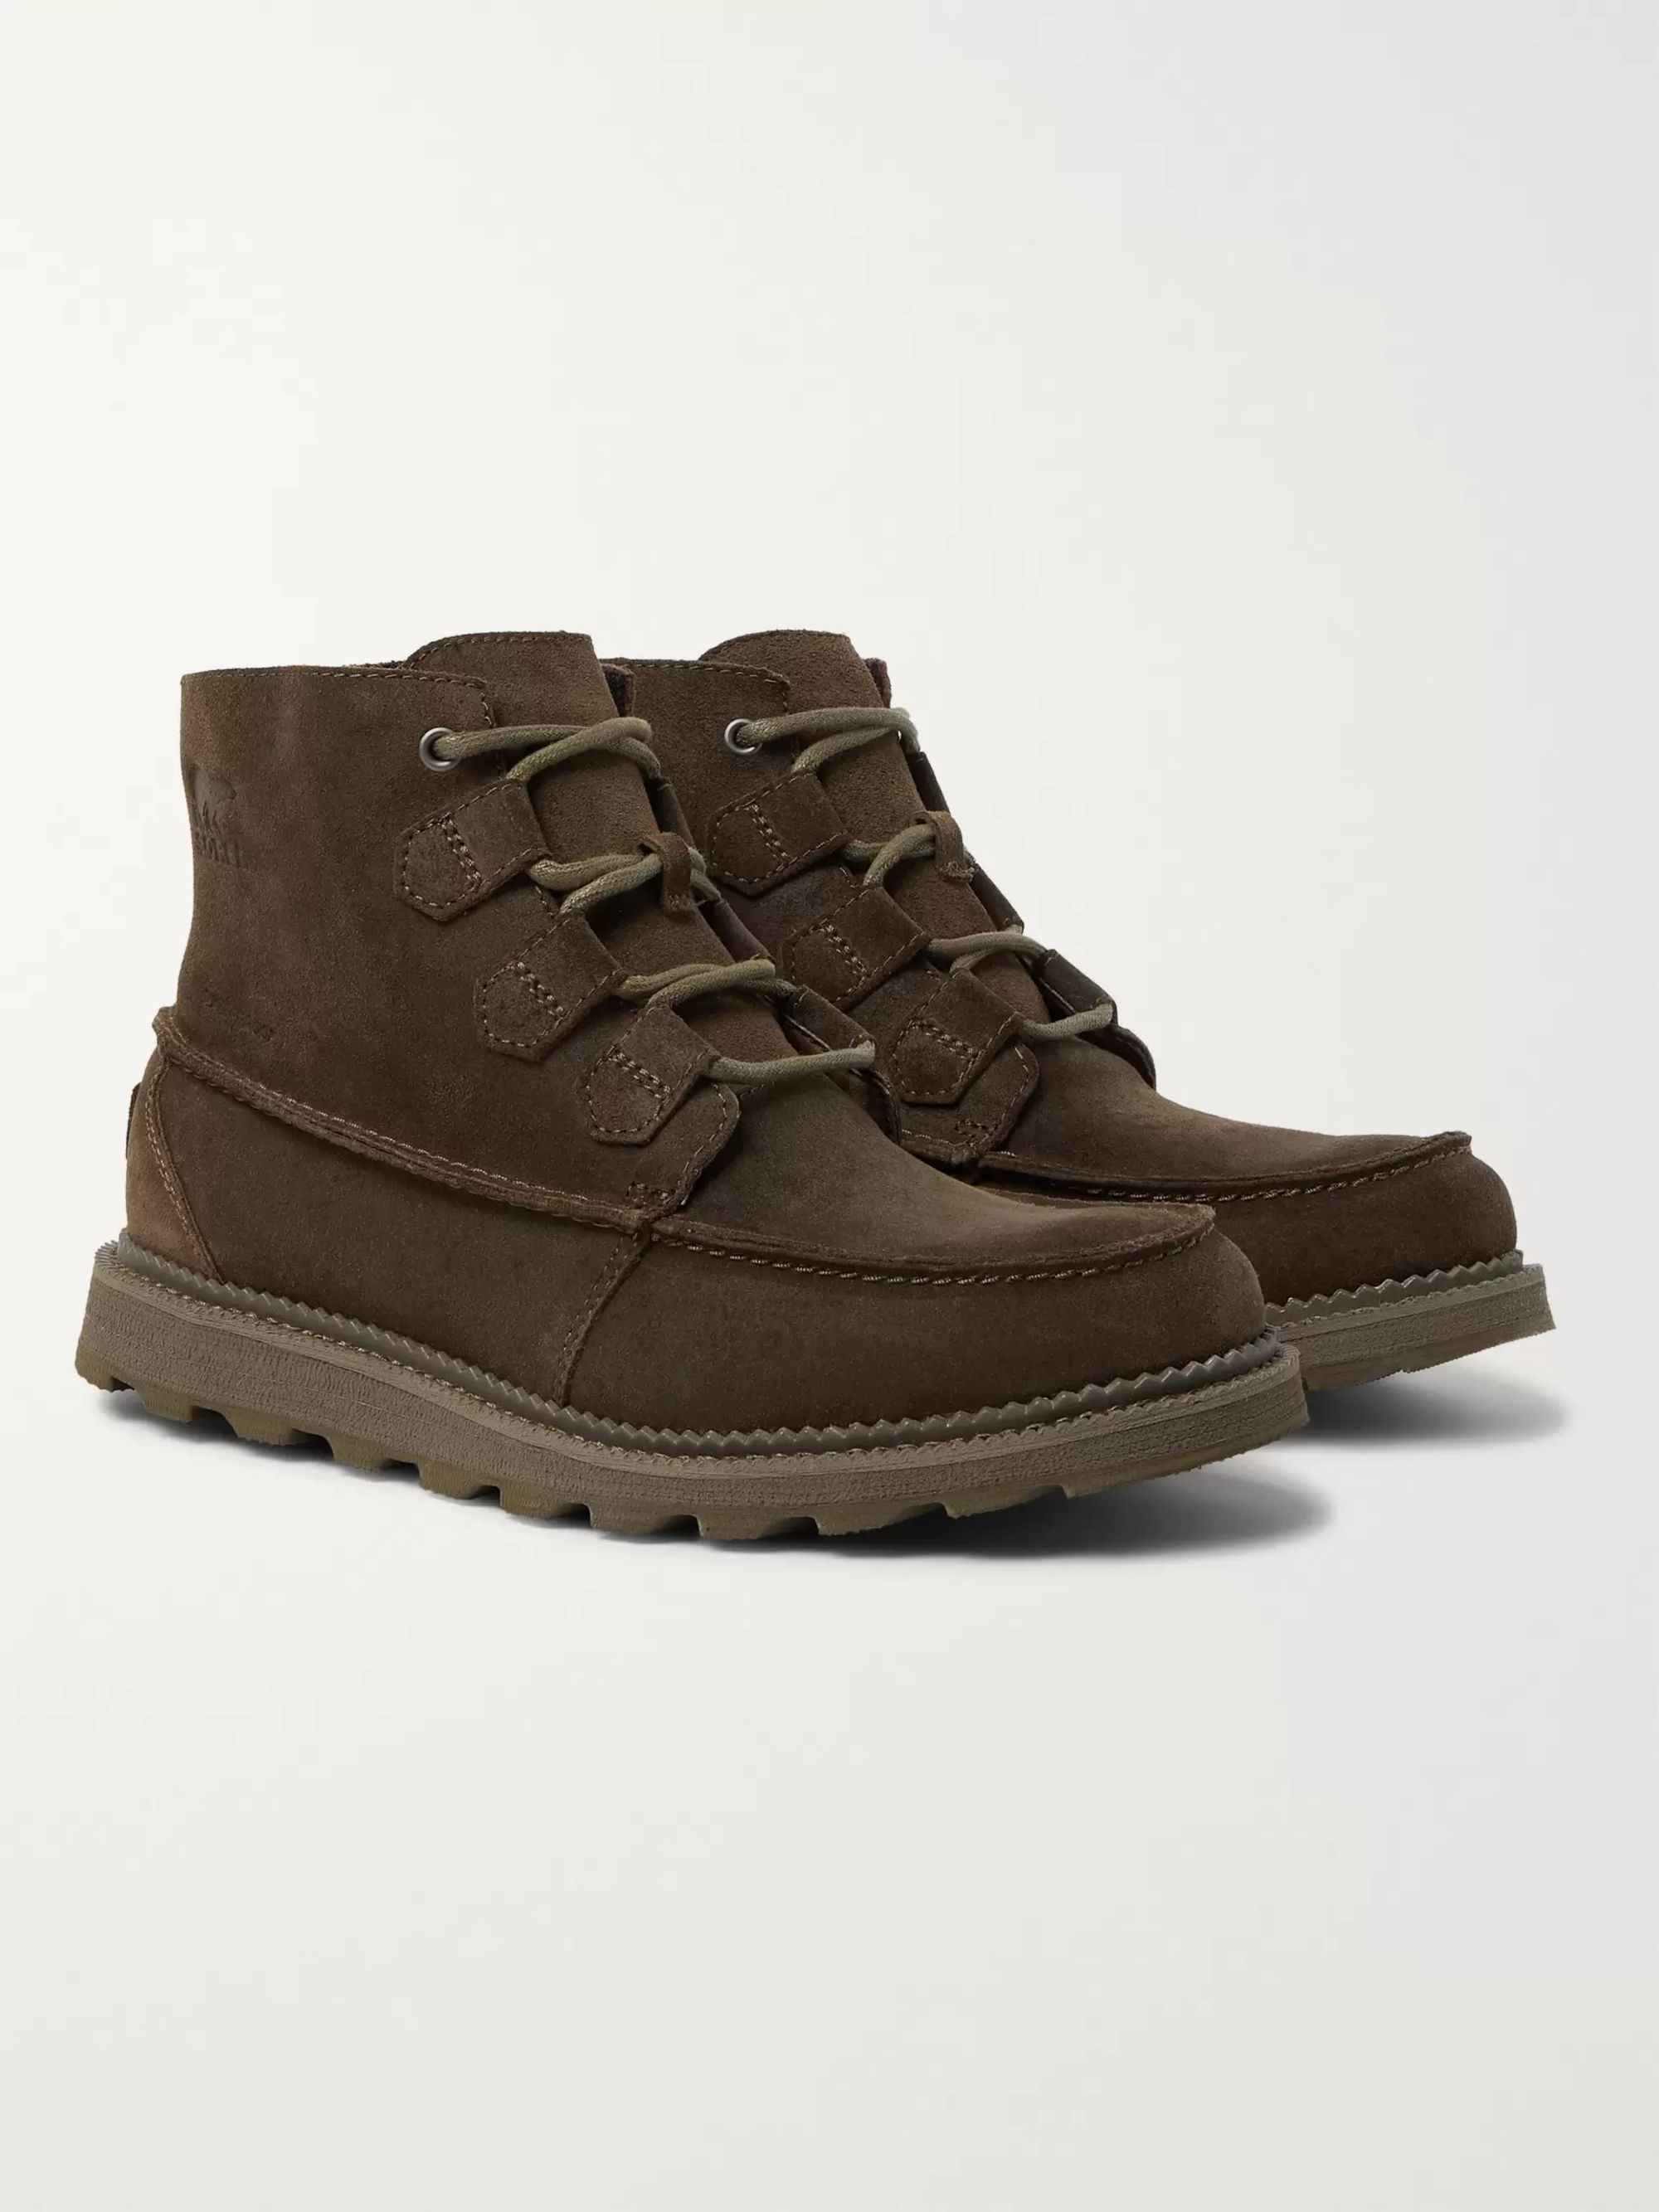 Sorel Madson Caribou Waterproof Leather Boots